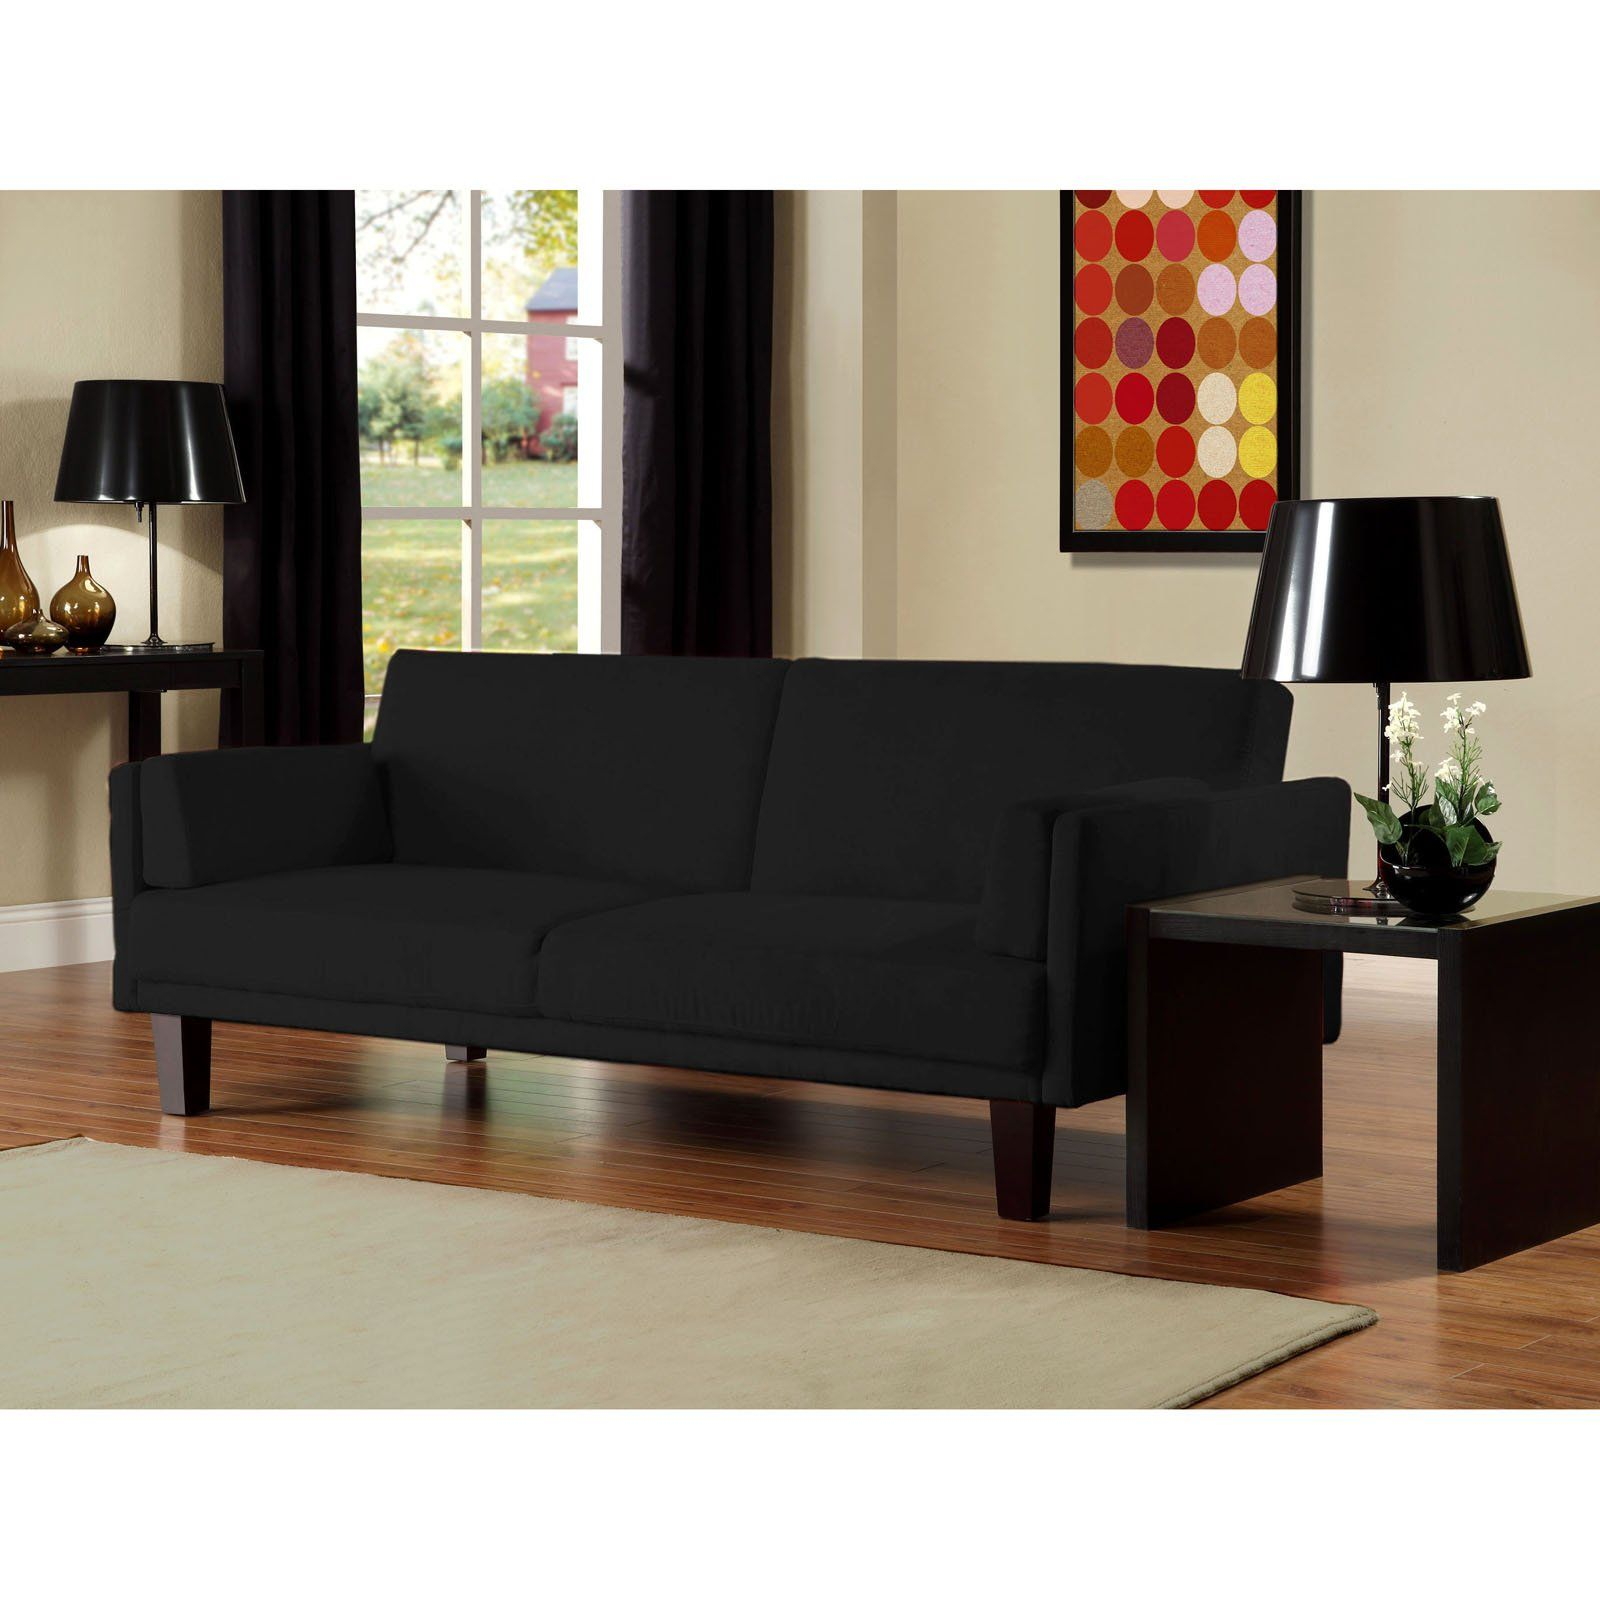 Thinking About Putting This Metro Futon Sofabed Multiple Colors In My Office